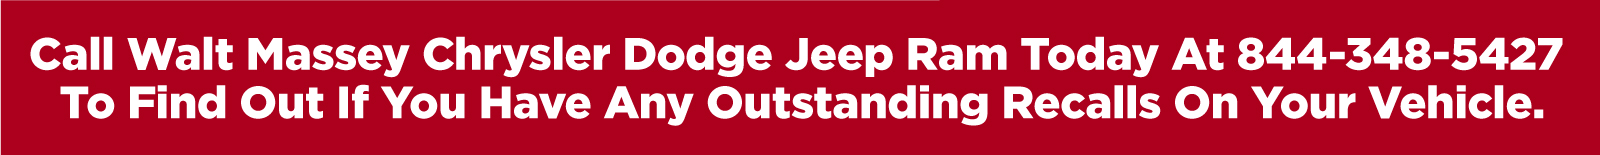 Call Walt Massey Chrysler Dodge Jeep Ram today at 844-348-5427 to find out if you have any outstanding recalls on your vehicle